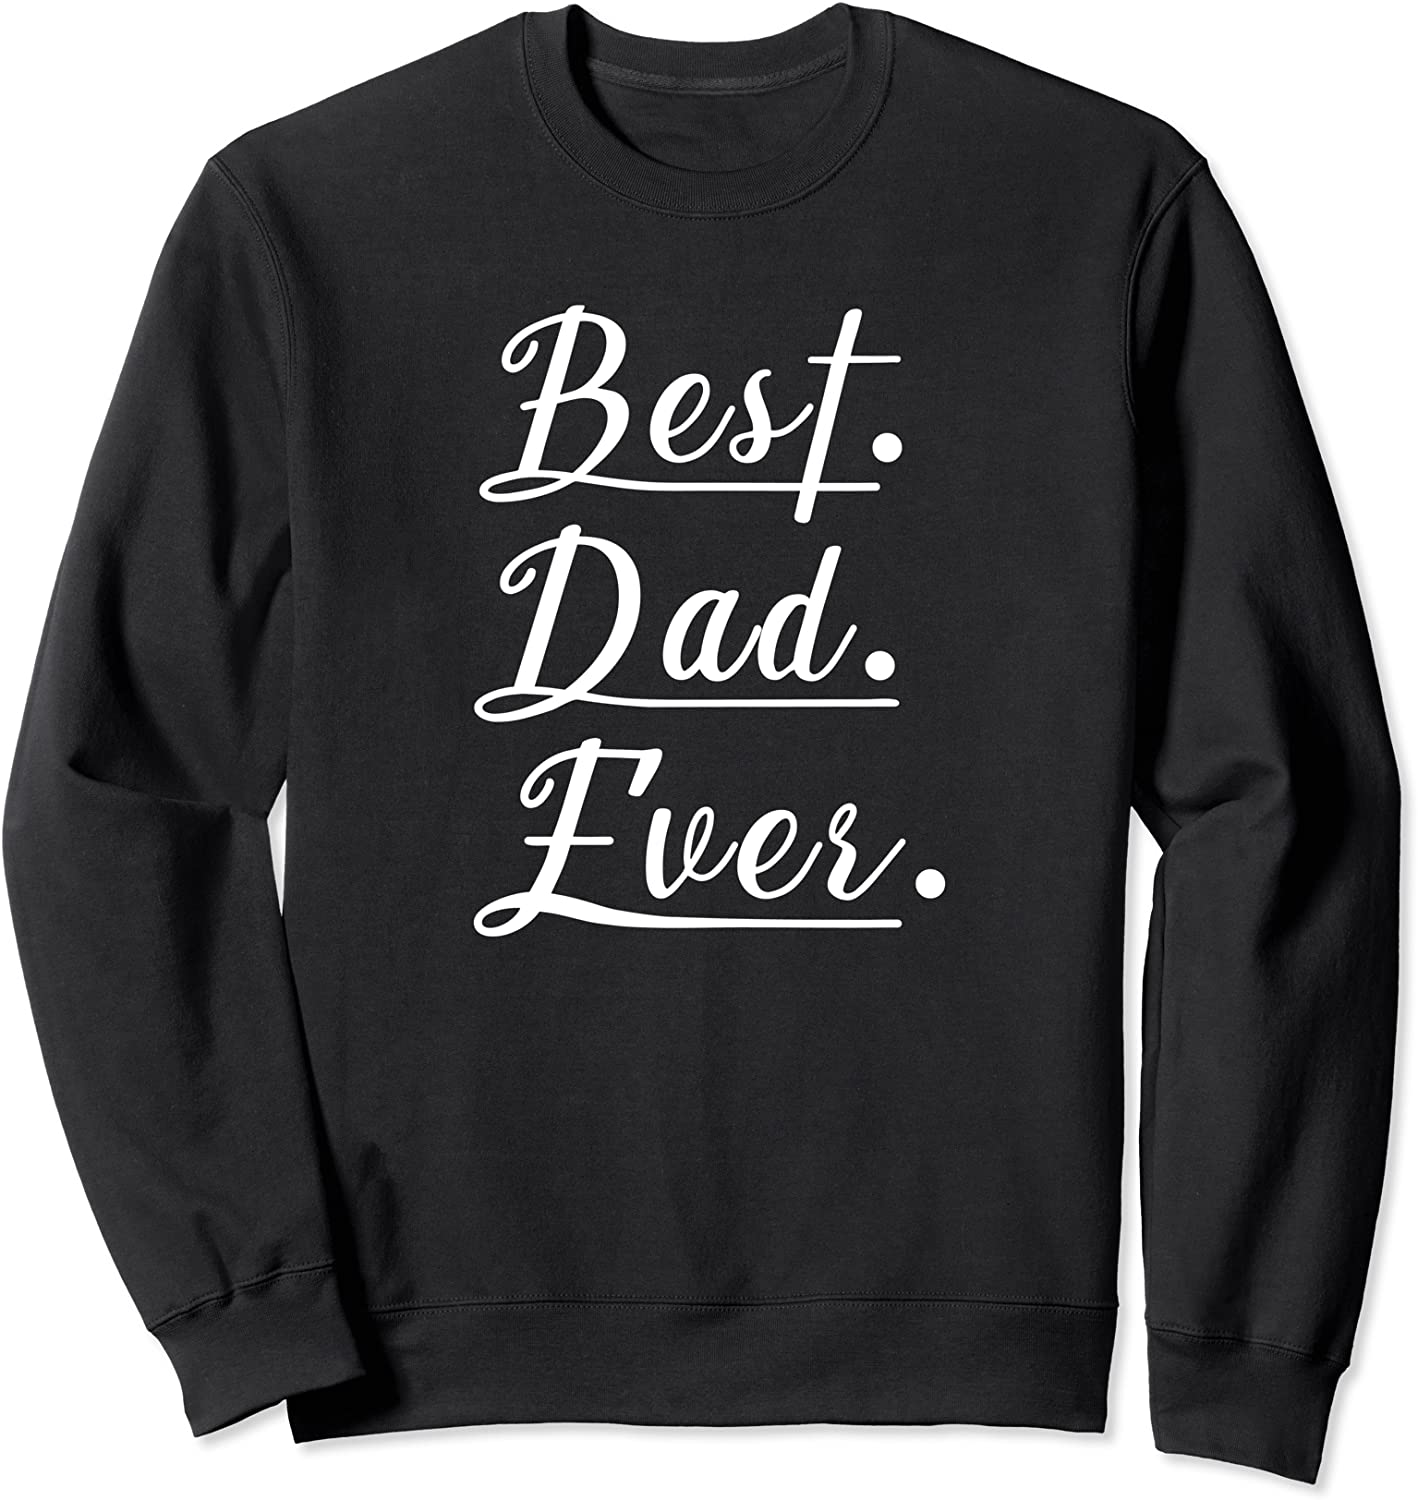 Best Free shipping Dad Ever for Father Day shop Sweatshirt